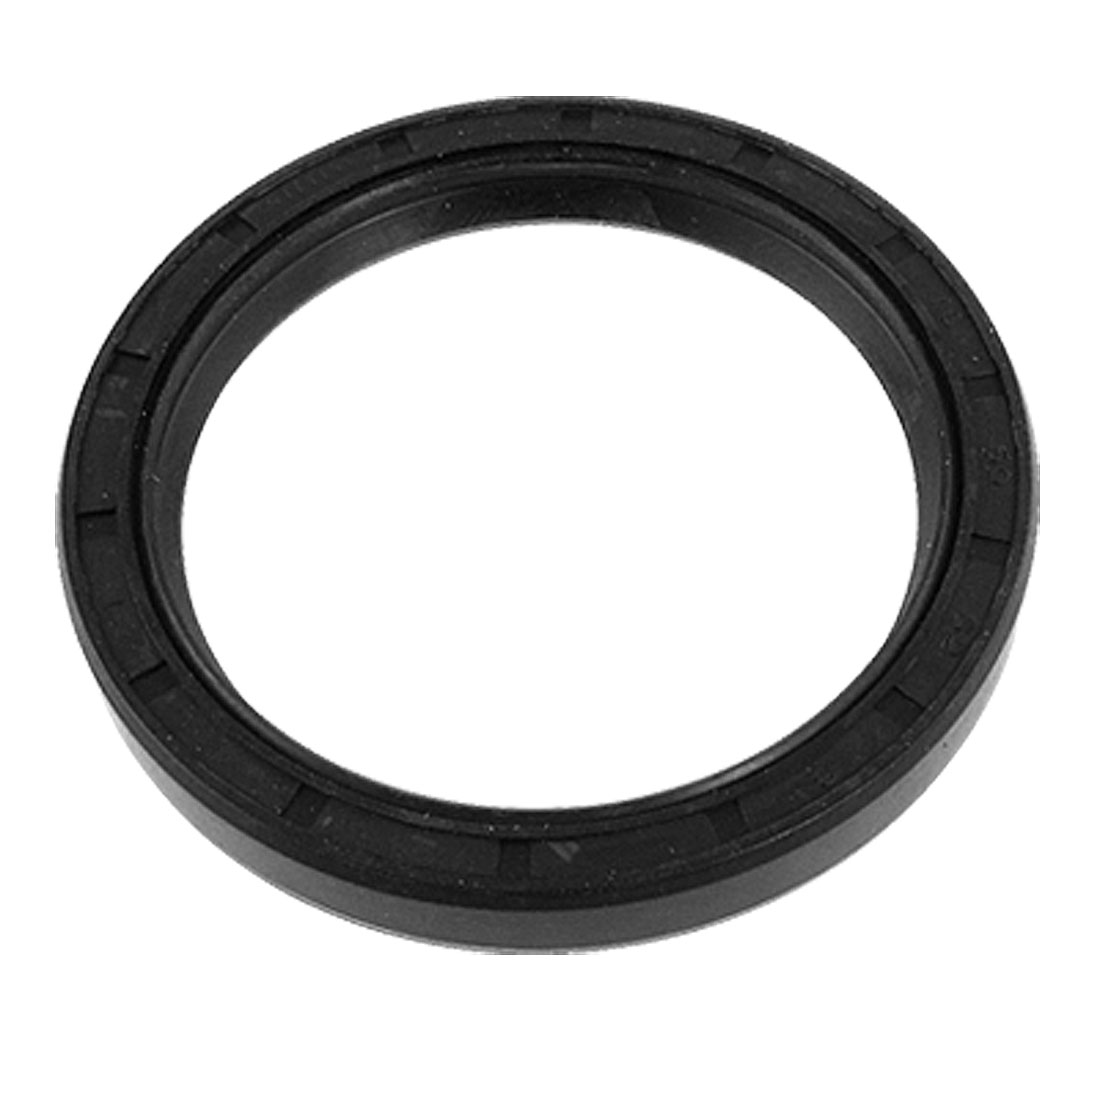 50mm x 62mm x 8mm Spring-loaded Double Lip Metric Oil Shaft Seal TC